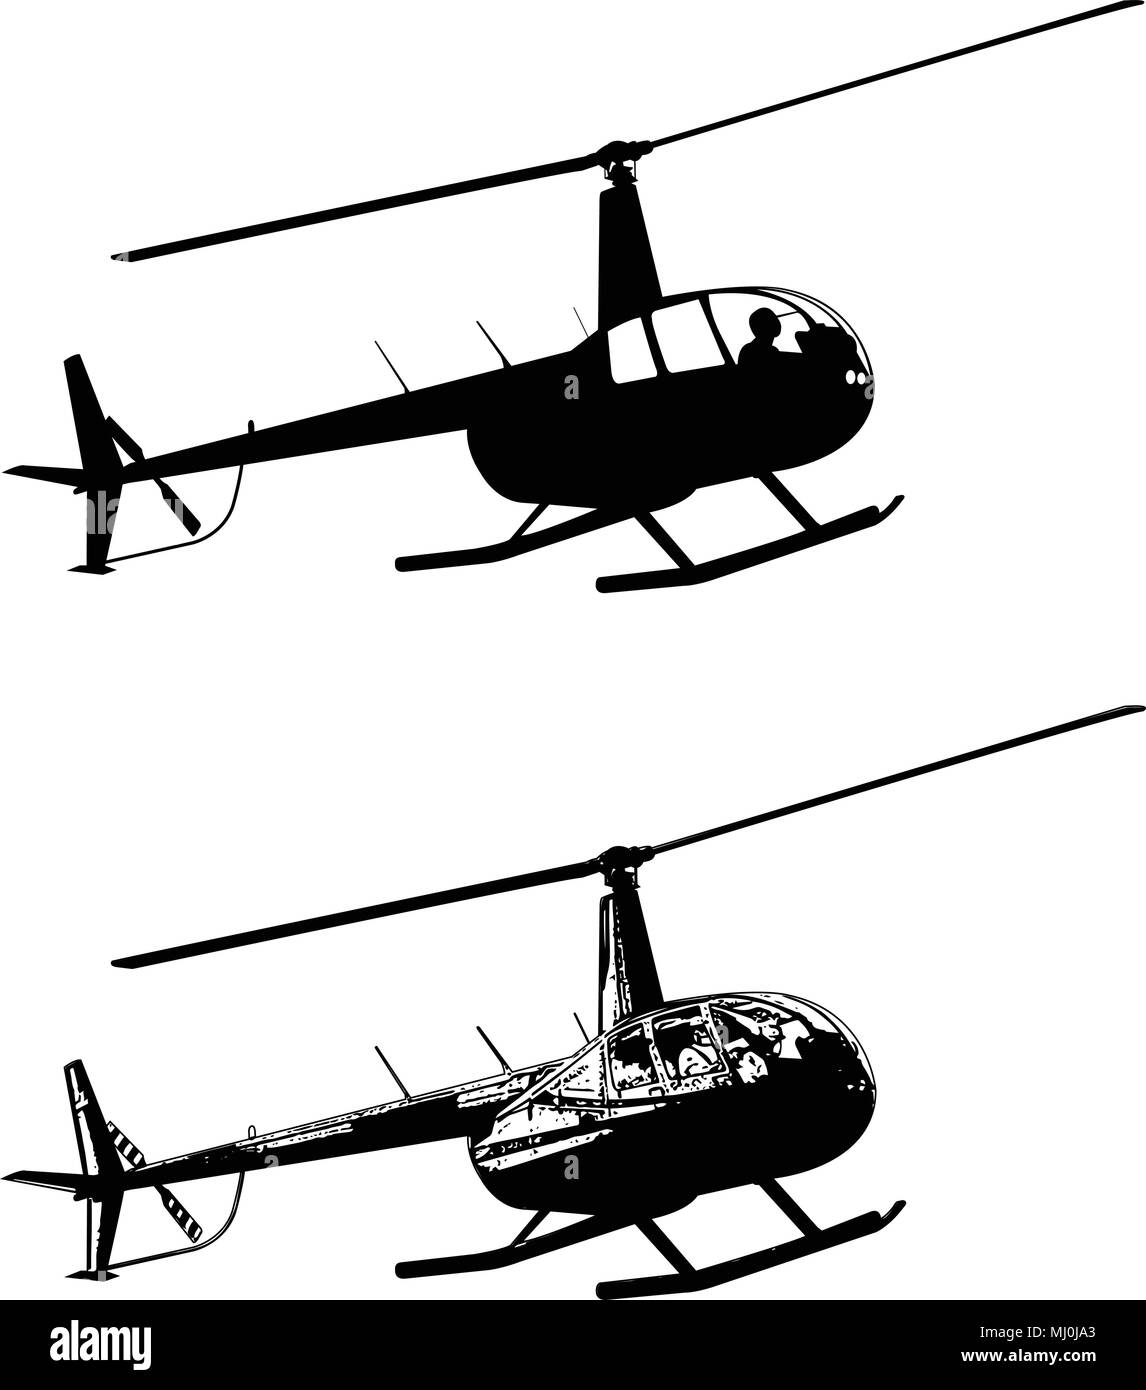 helicopter silhouette and sketch - vector - Stock Vector